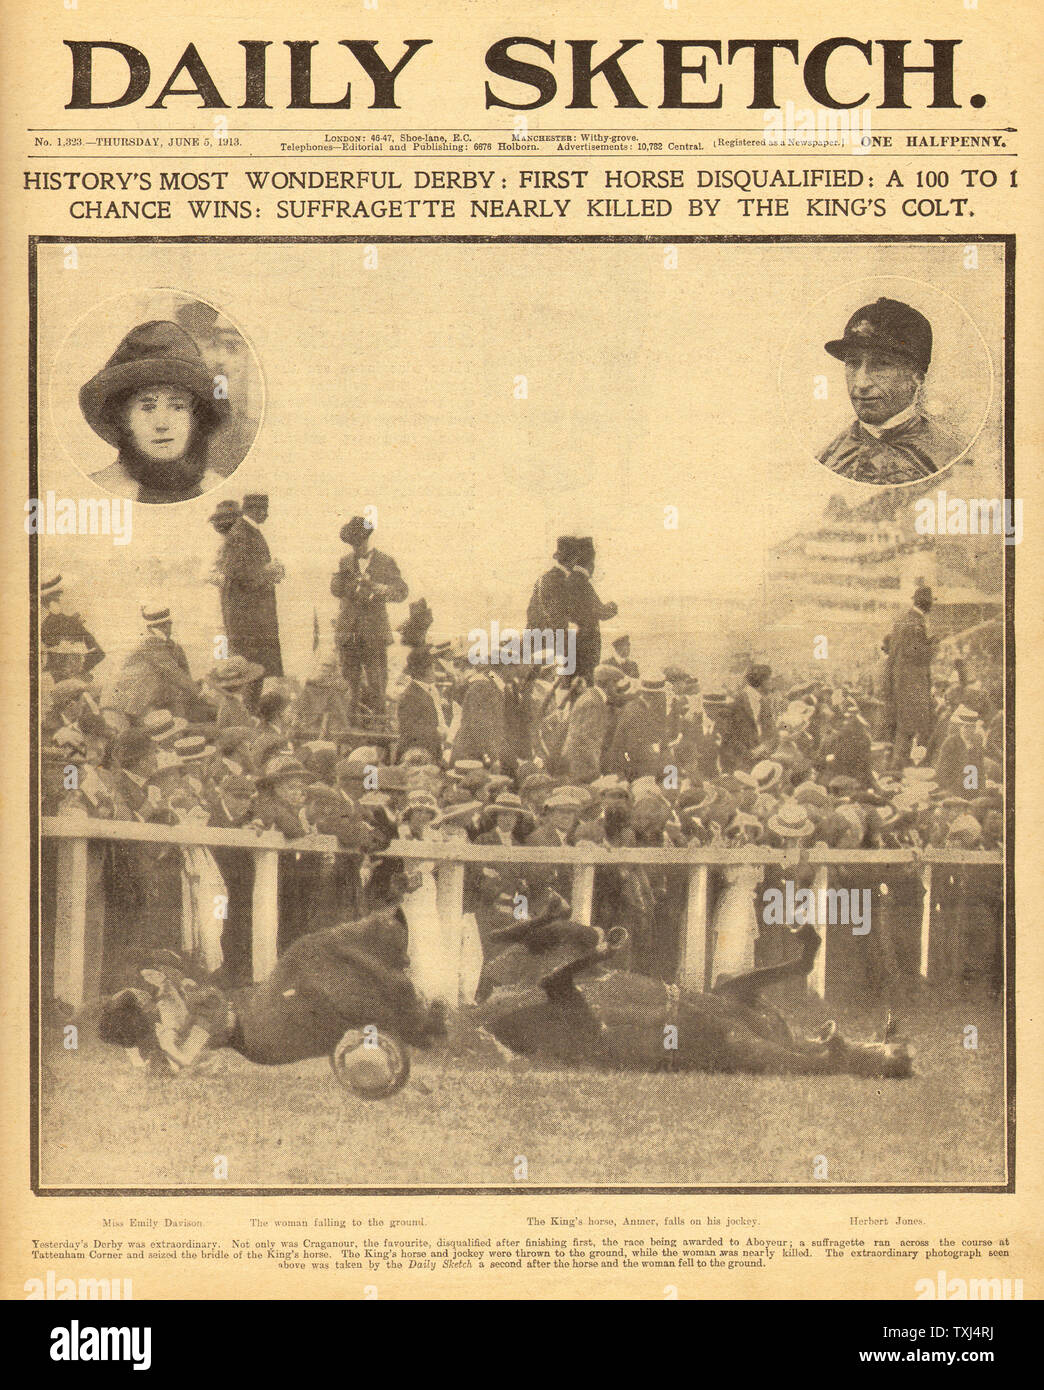 Pair of SUFFRAGETTE EMILY DAVISON KILLED 1913 NEWSPAPER Collectors Tokens//Medals